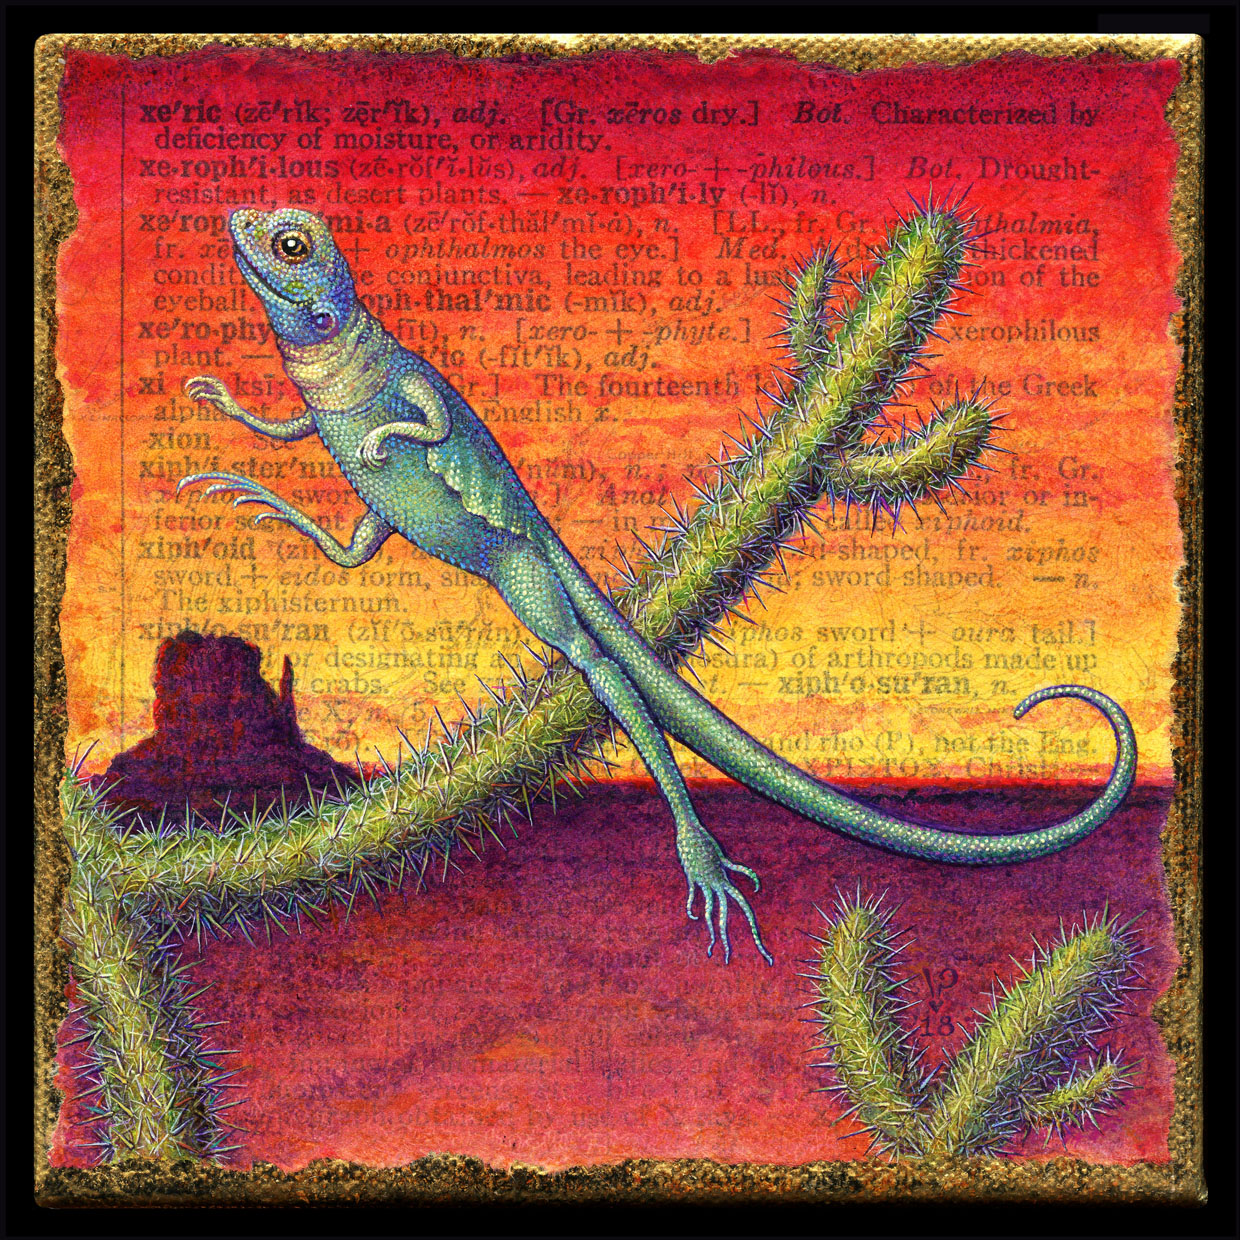 Thursday S Word For A Day Is Xeric I Was Born In Texas So Had No Trouble Envisioning Cacti Lizards But To Get Them Form The Letter X